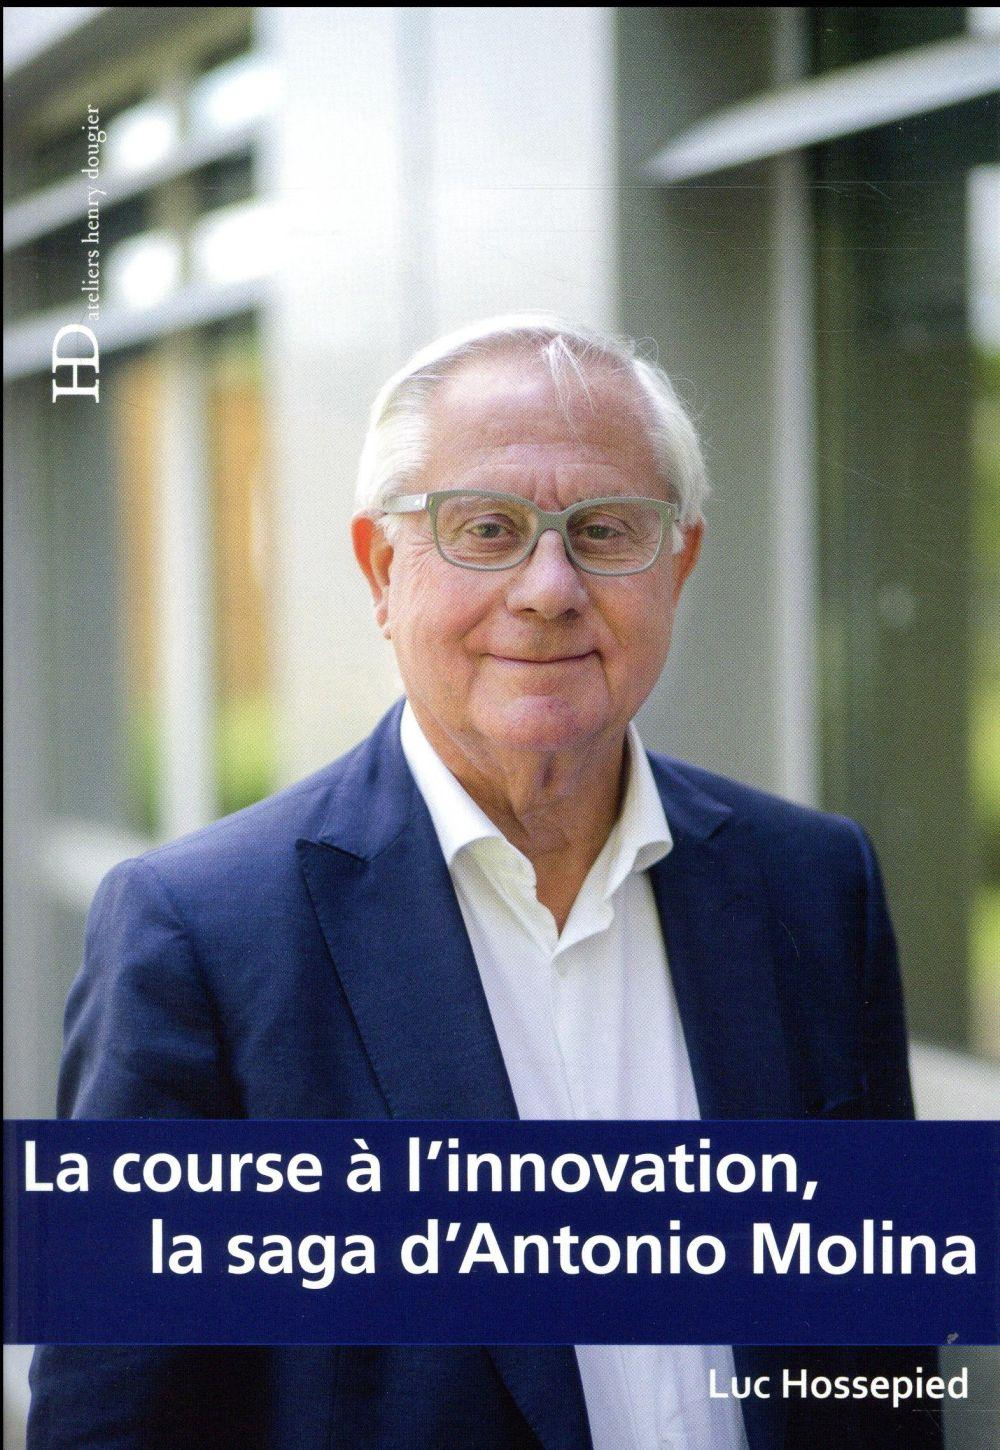 La course à l'innovation ; la saga d'Antonio Molina  - Luc Hossepied